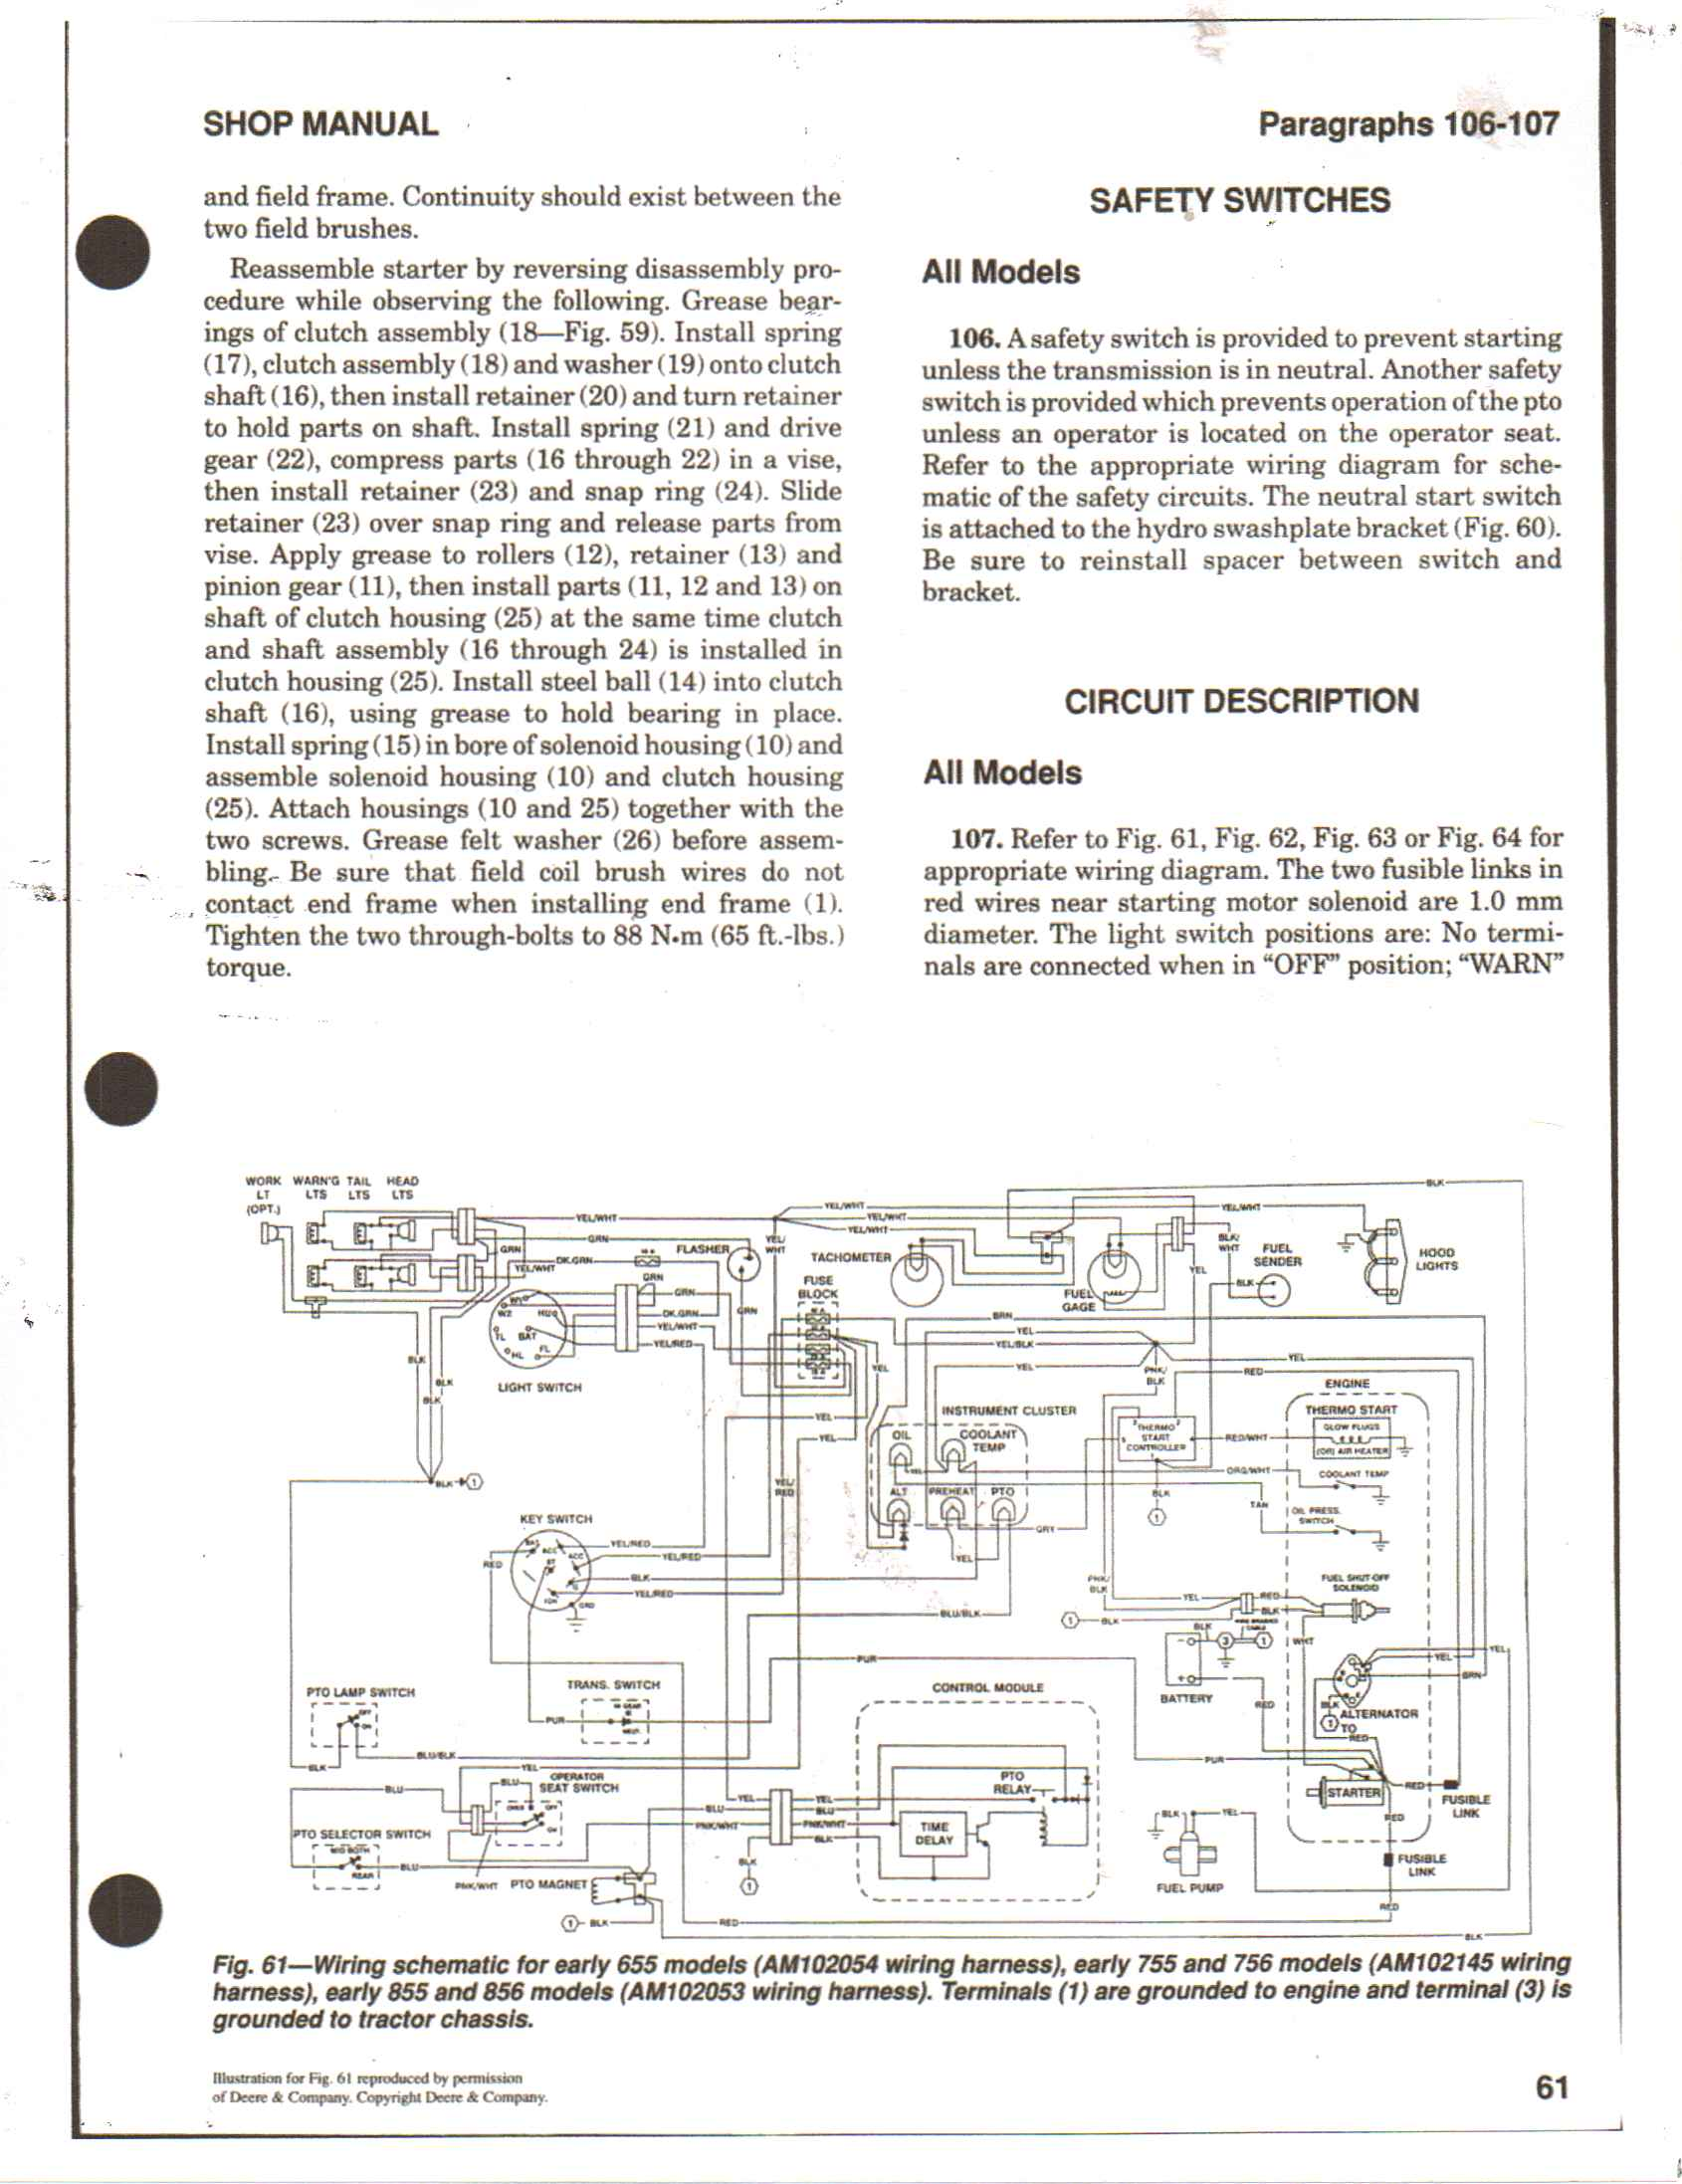 John Deere 855 Wiring Diagram Just Another Data Srx75 I Have A Compact Tractor Wont Start With The Key But If B